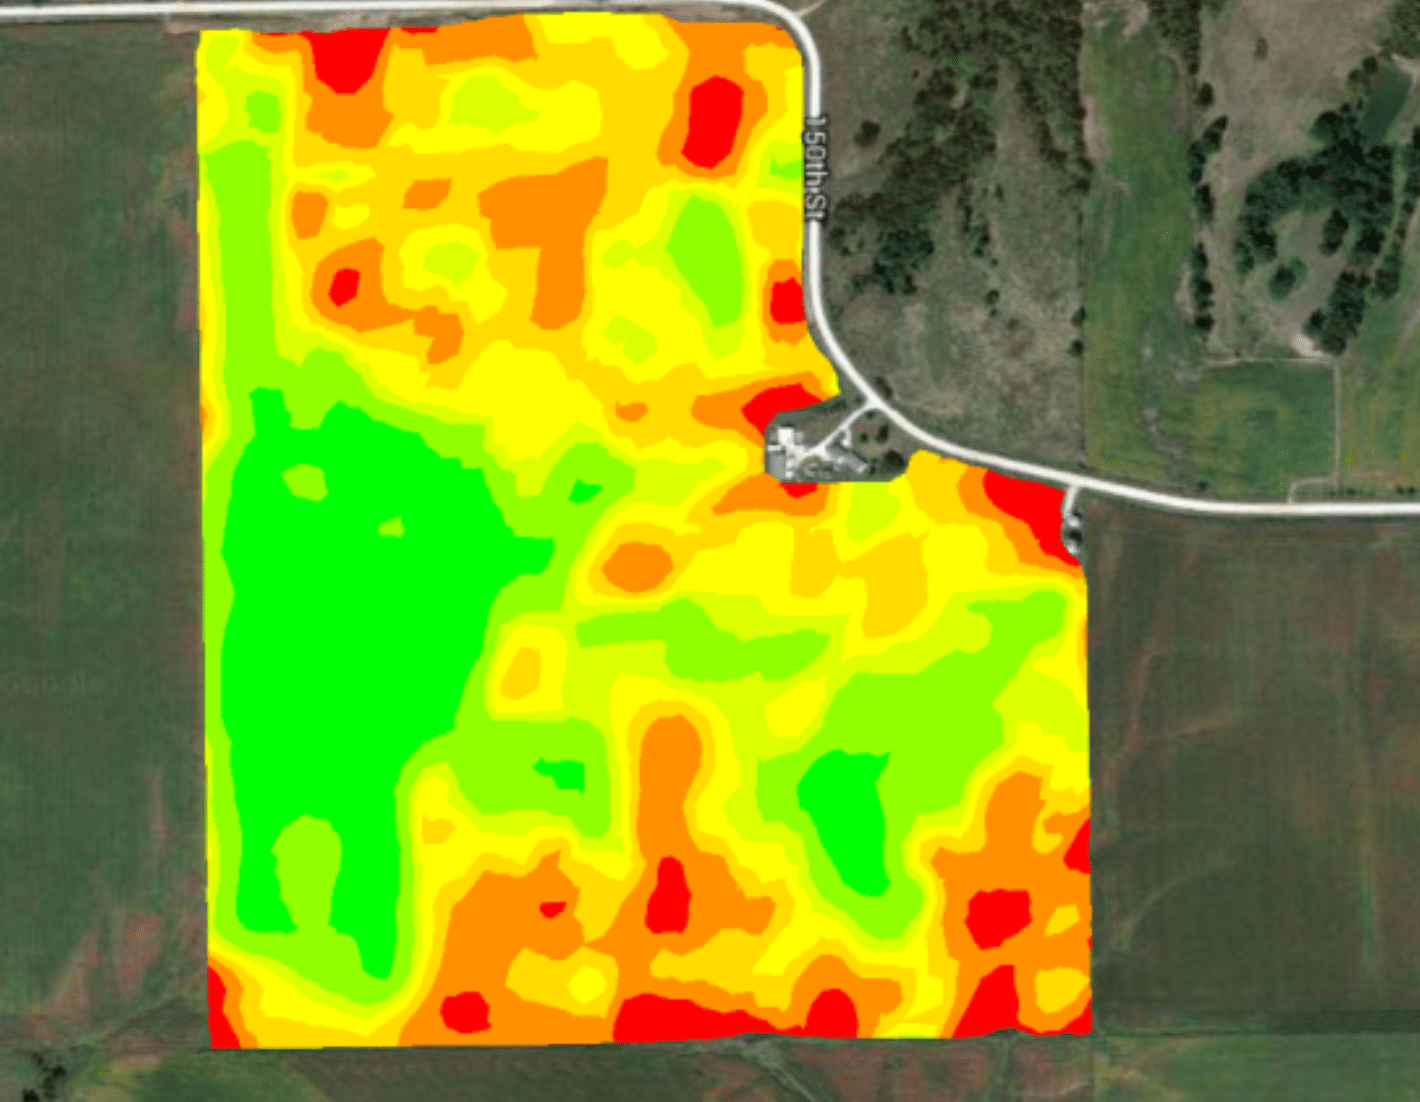 How computer imaging can analyze plots of farmland for optimal crop growing.